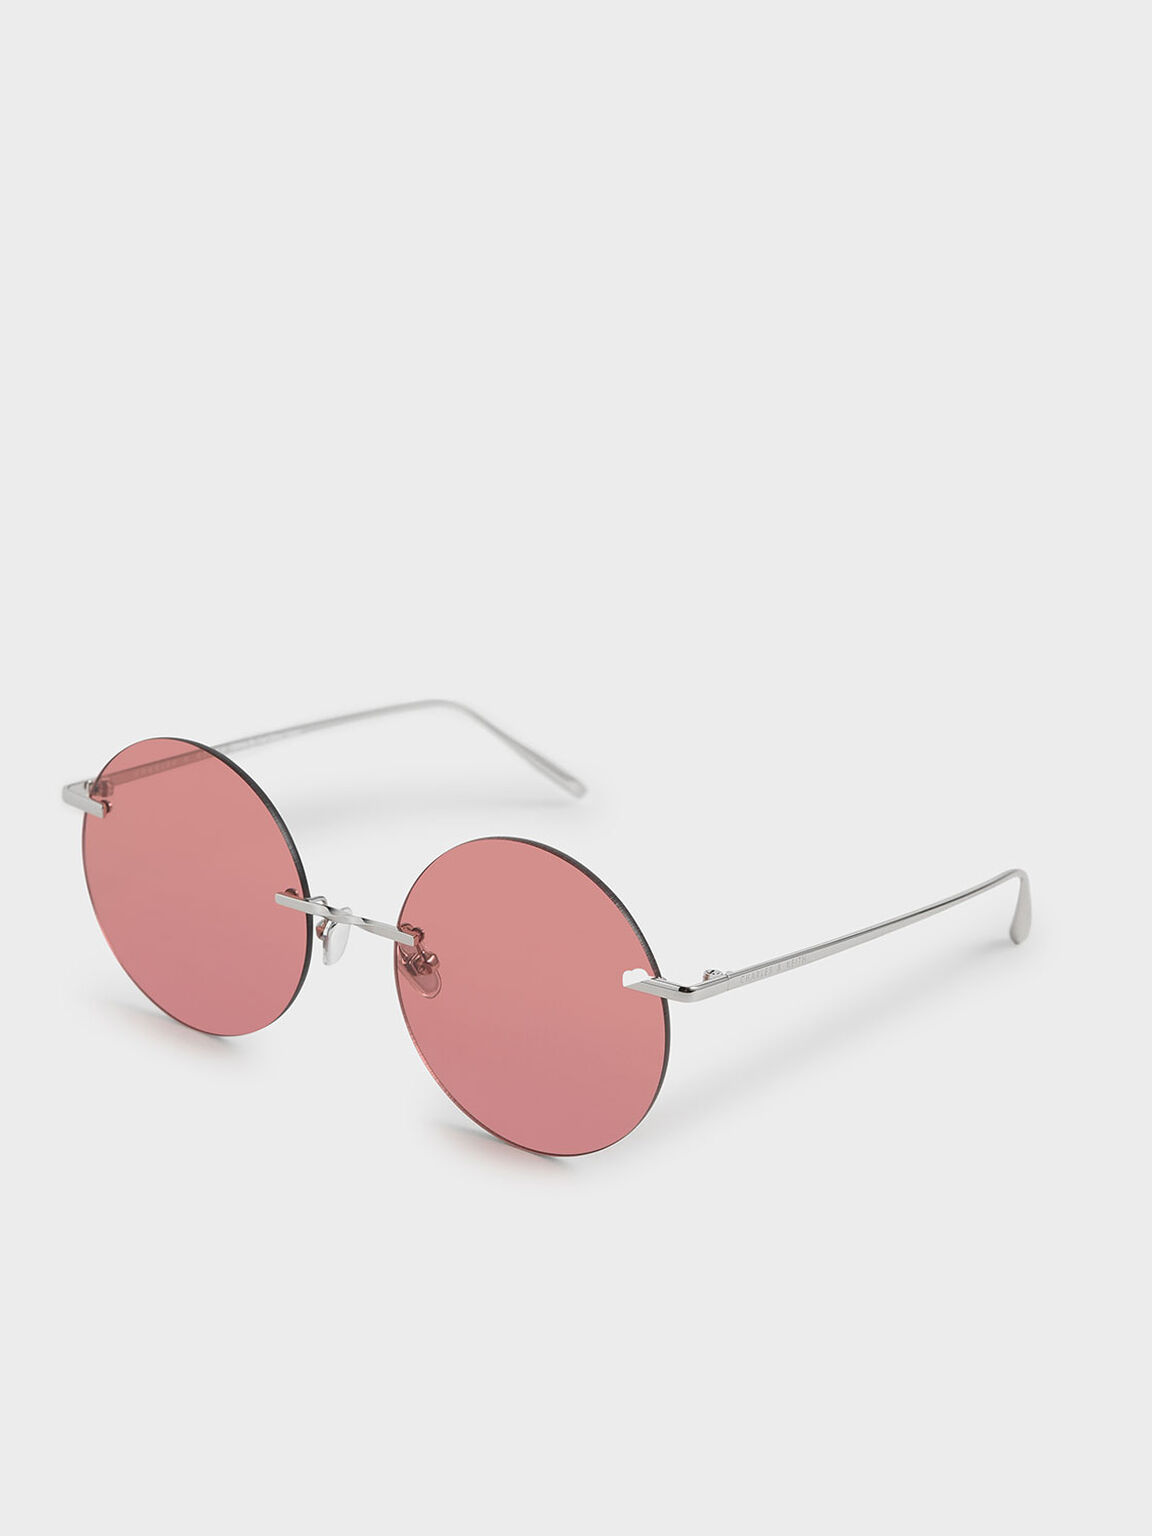 Round Rimless Sunglasses, Red, hi-res